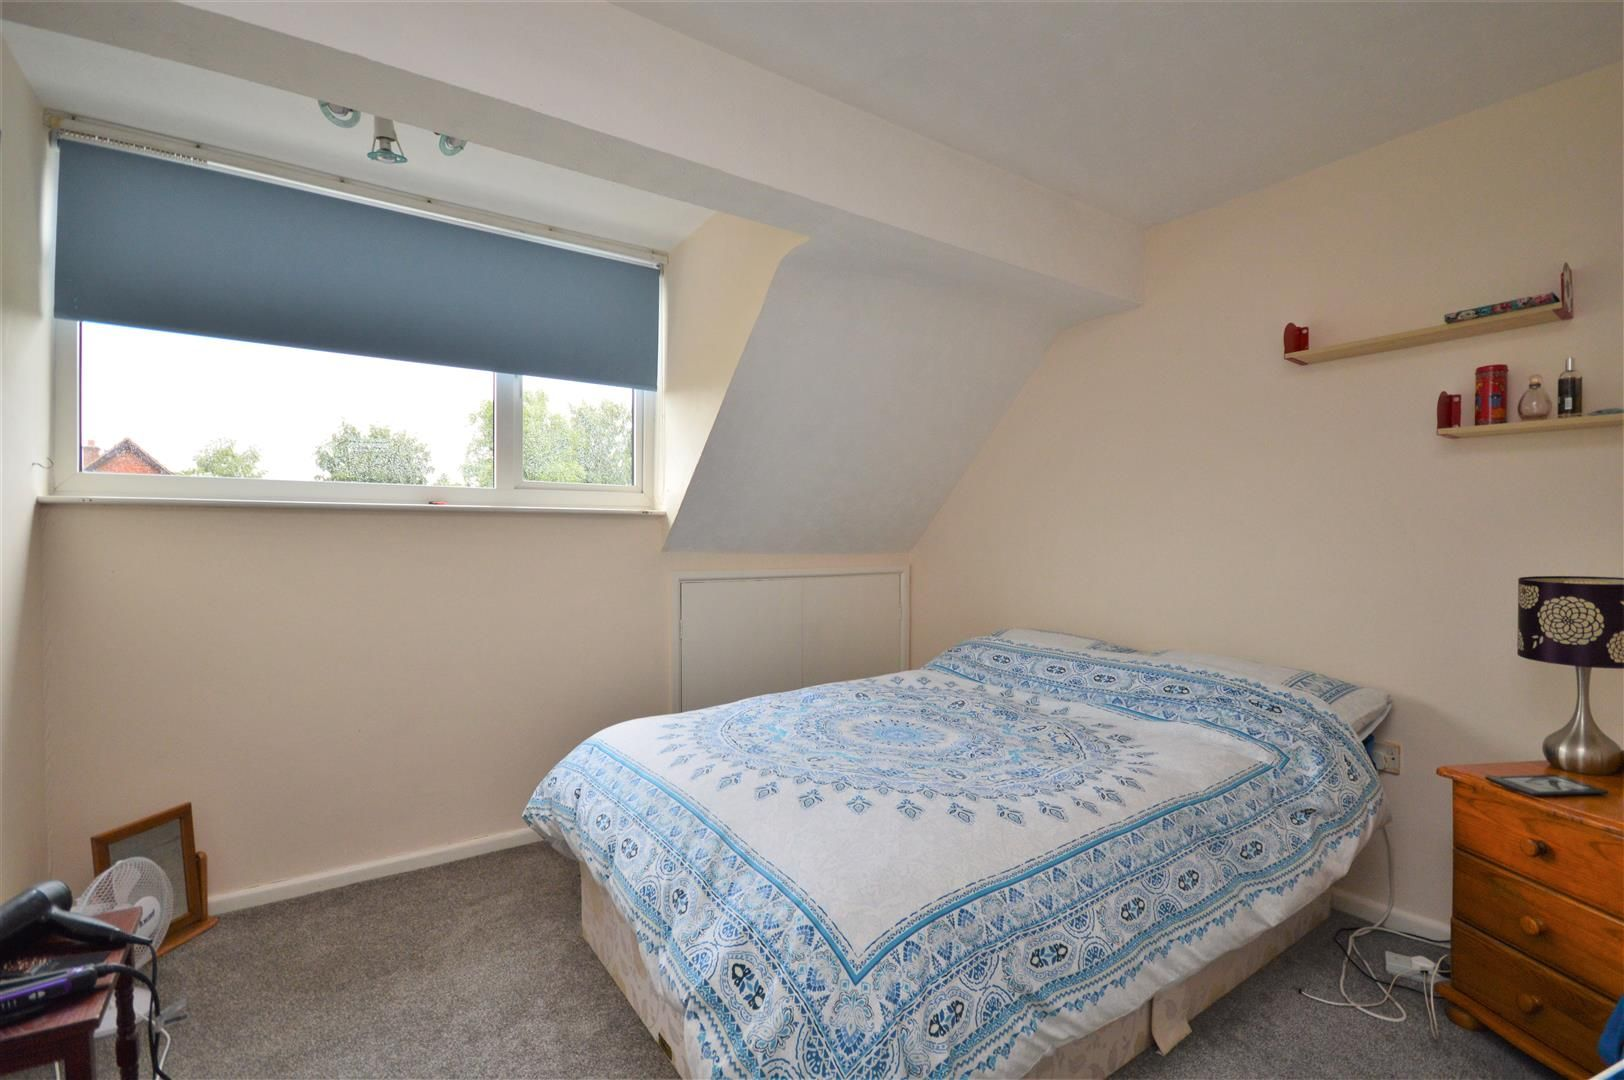 4 bed semi-detached for sale in Clehonger  - Property Image 12